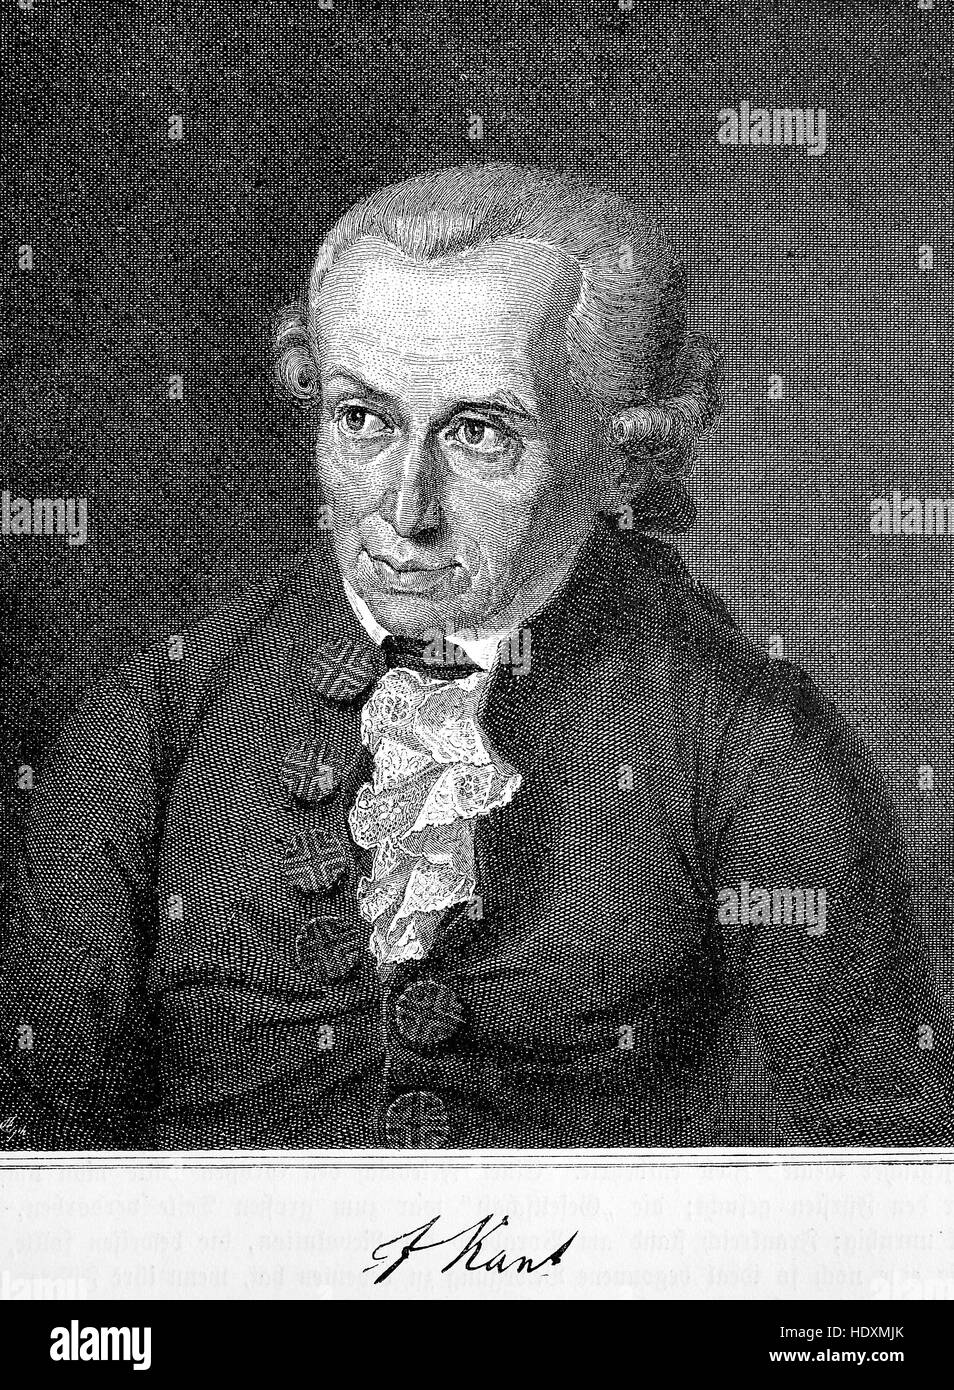 Immanuel Kant, 1724-1804,s a German philosopher who is considered the central figure of modern philosophy, woodcut - Stock Image